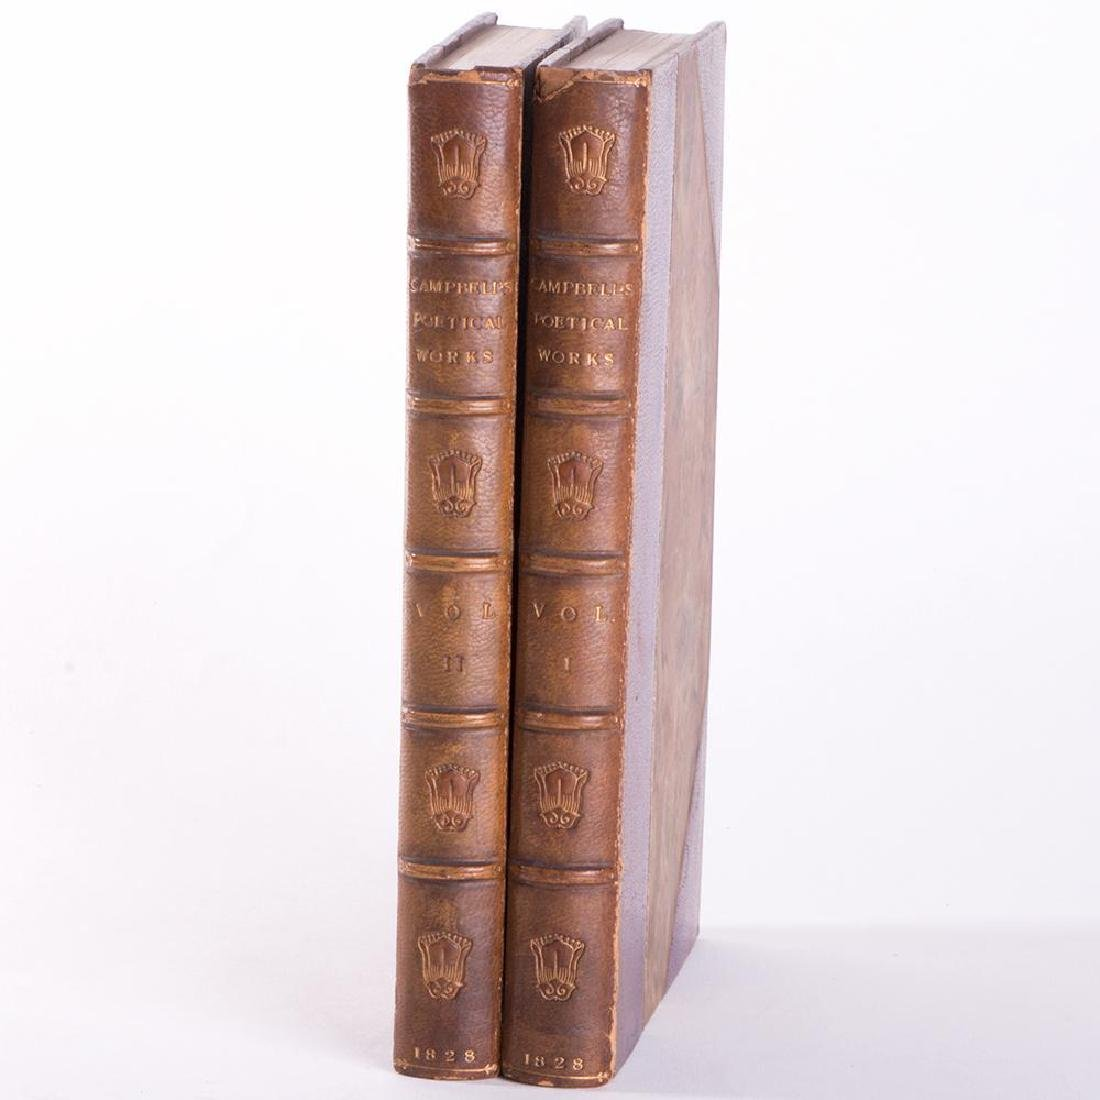 Two volumes by Thomas Campbell